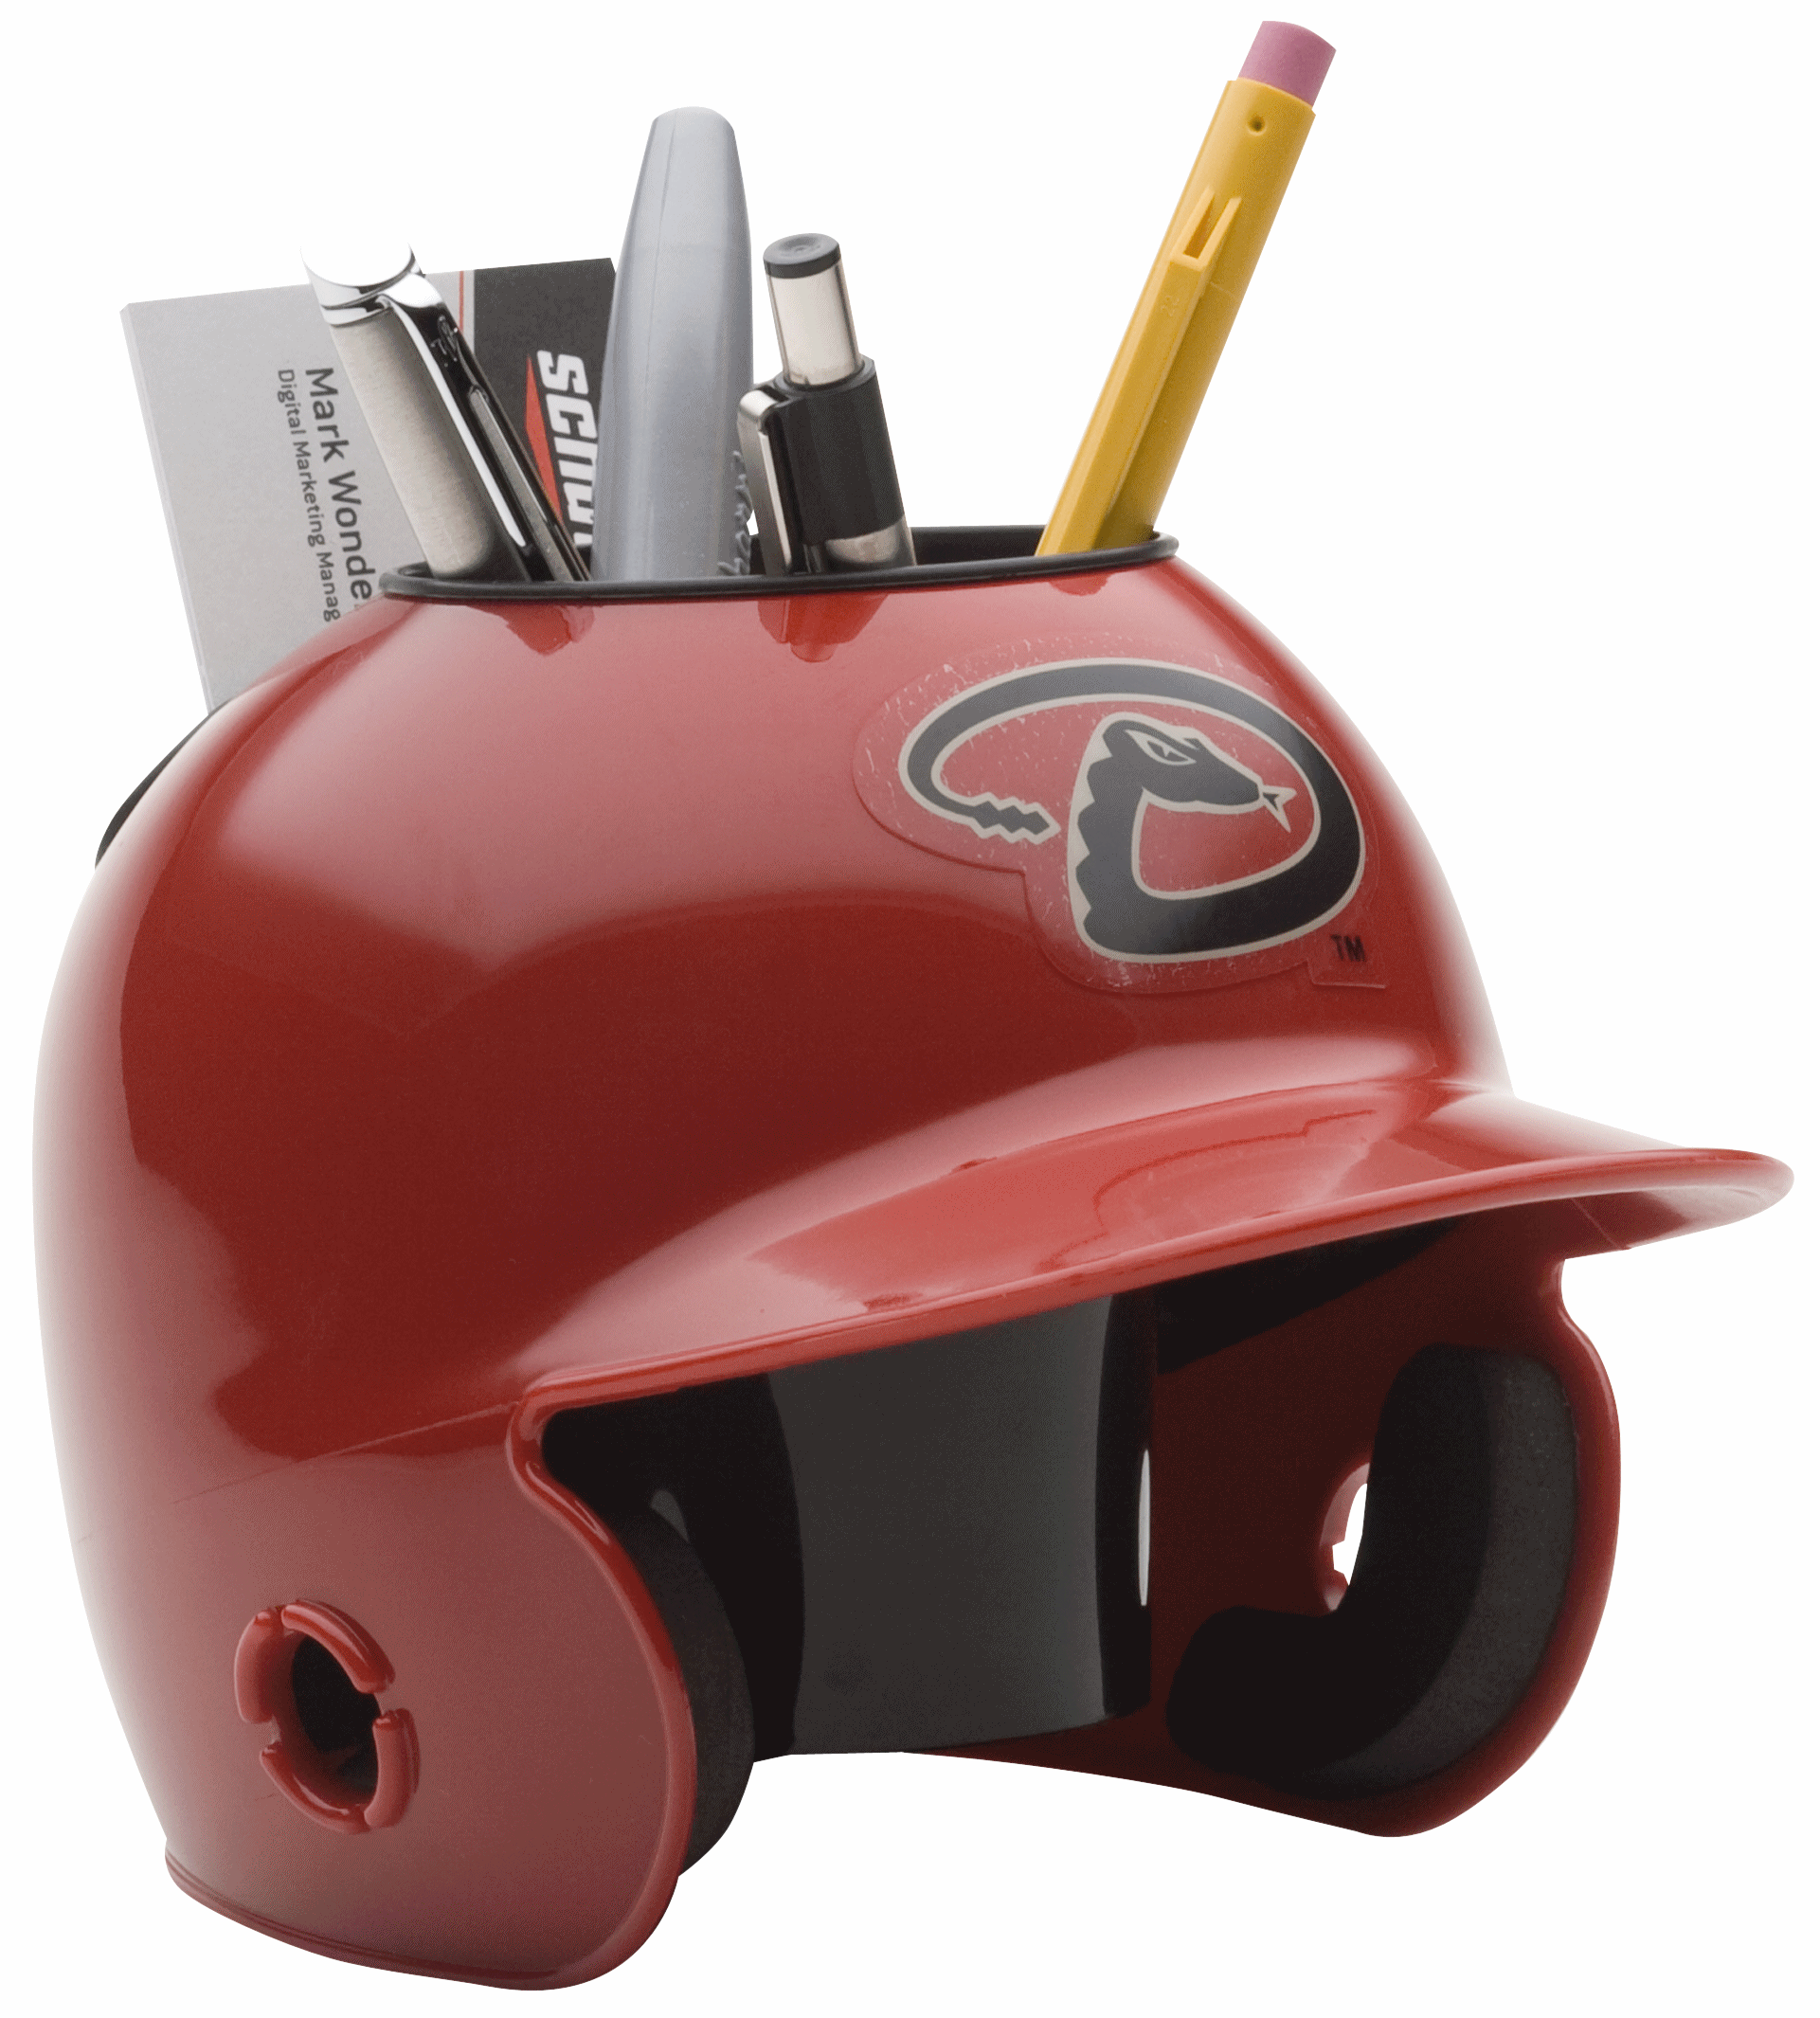 Arizona Diamondbacks Miniature Batters Helmet Desk Caddy